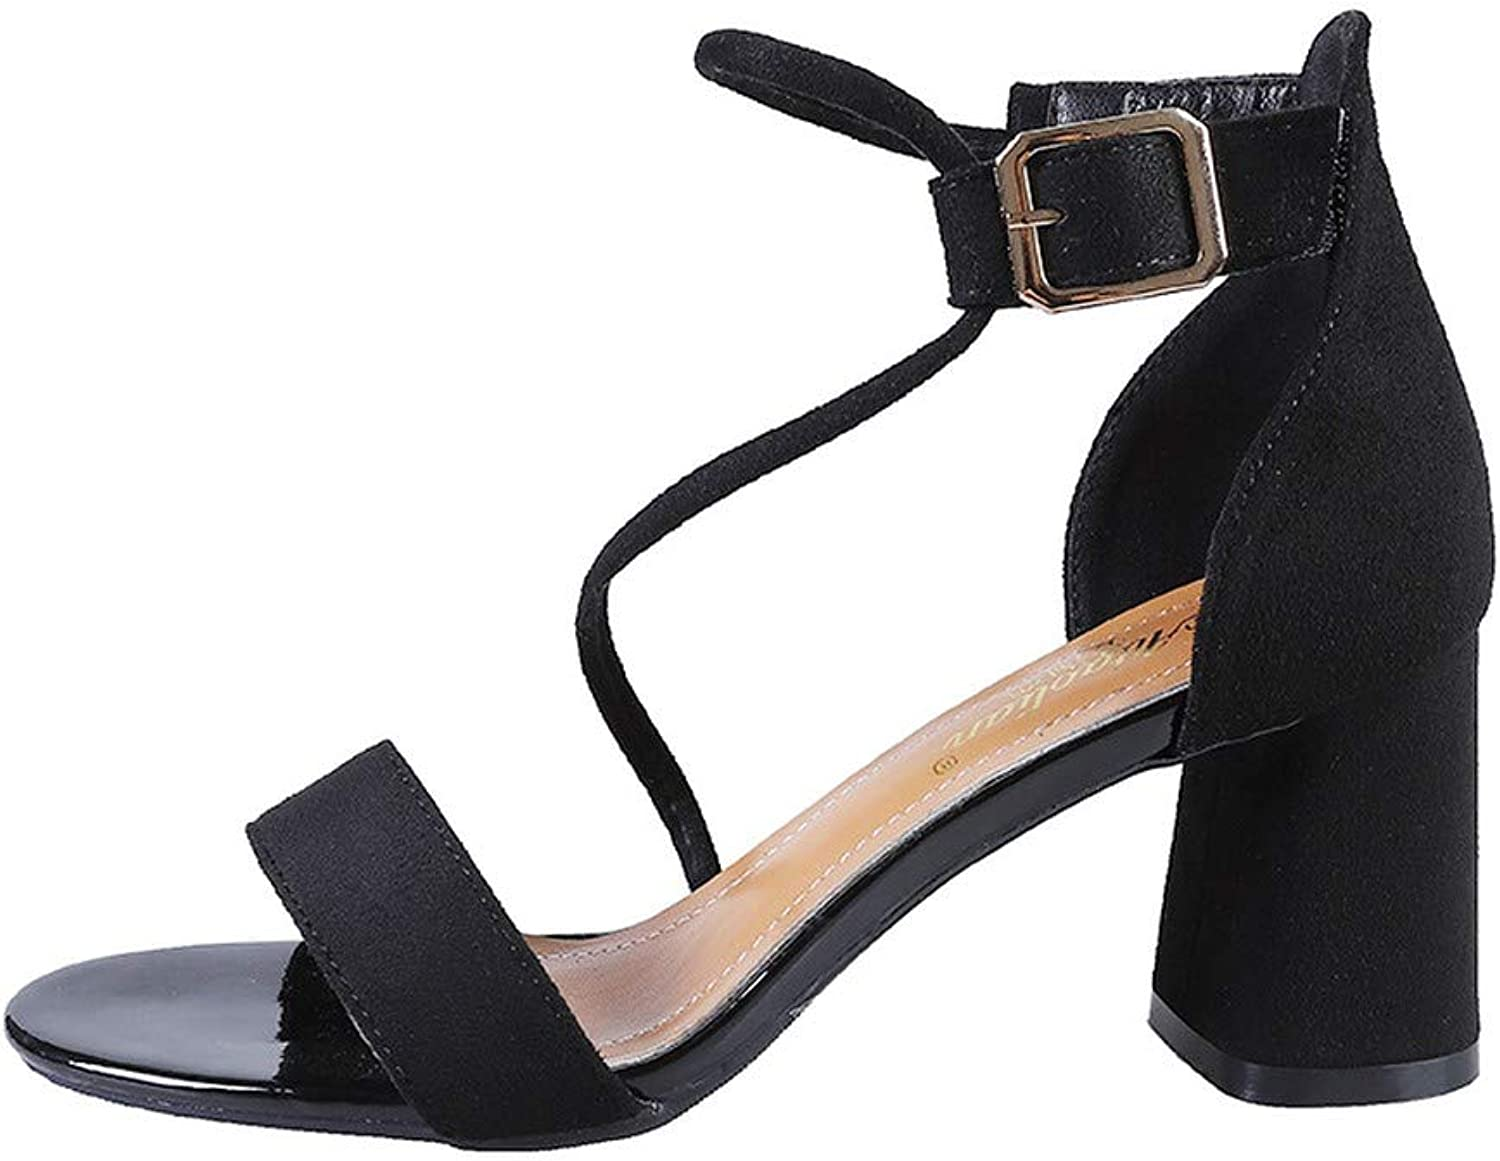 NURJOR Women's Open Toe Heel - Ladies Strappy Sandal with Concealed Orthotic Arch Support